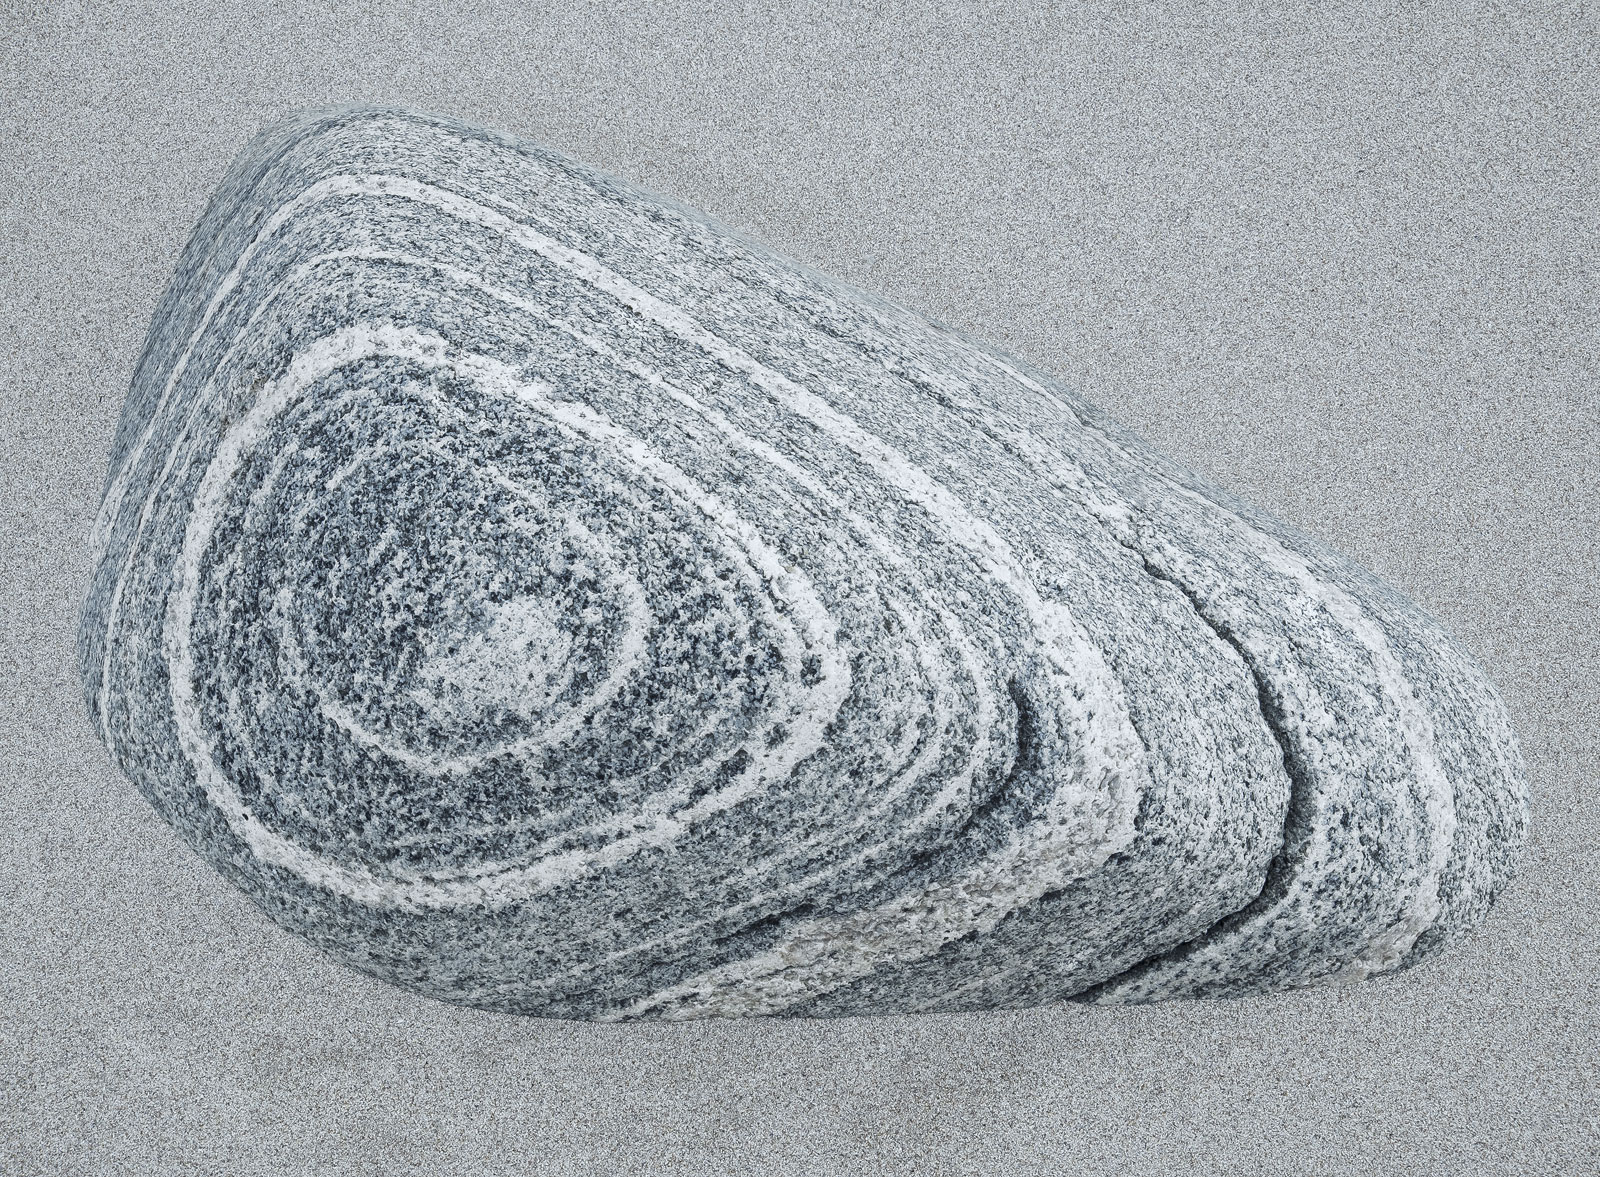 Gneiss is one of my very favourite rocks and this contoured and banded grey stone is particularly lovely half submerged in soft...